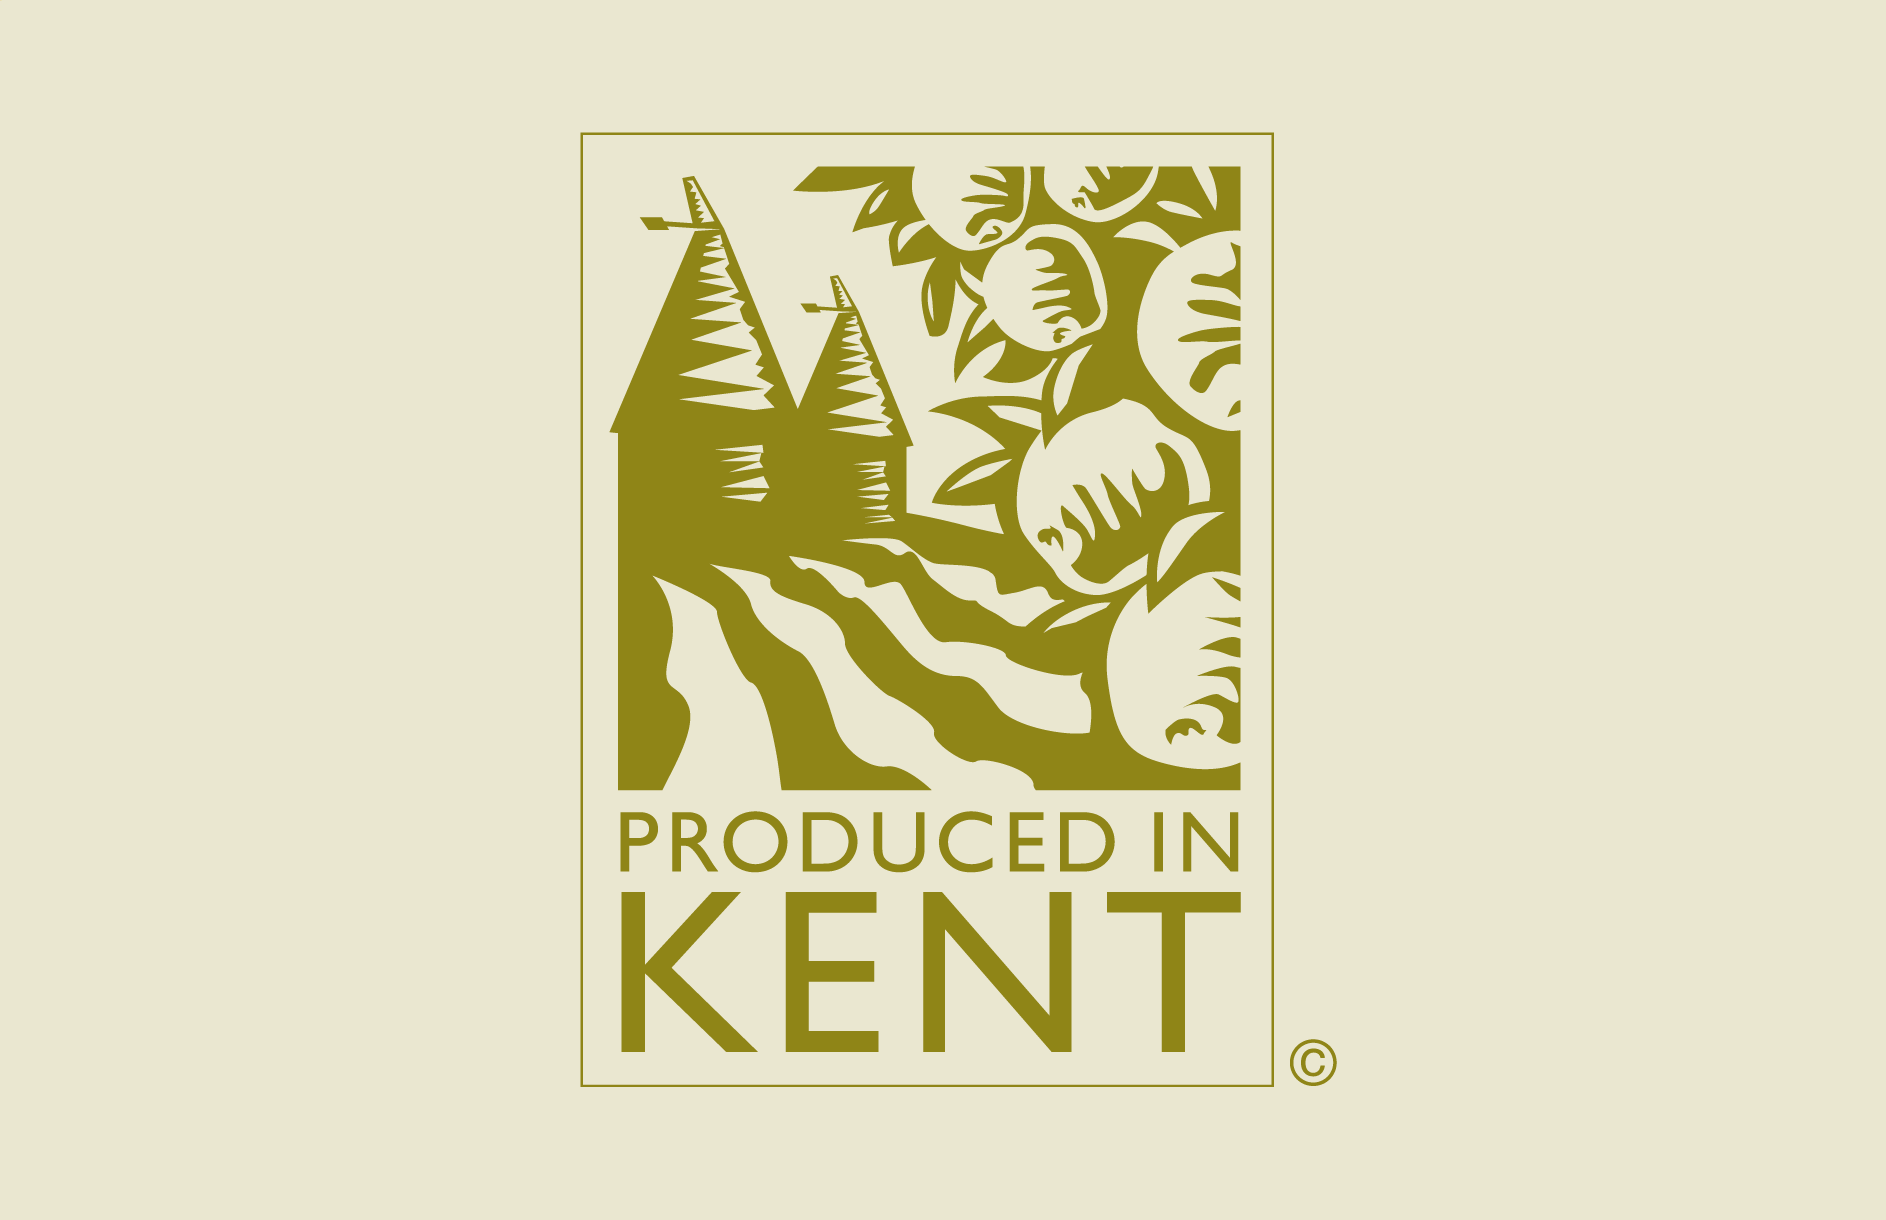 Produced in Kent / Identity